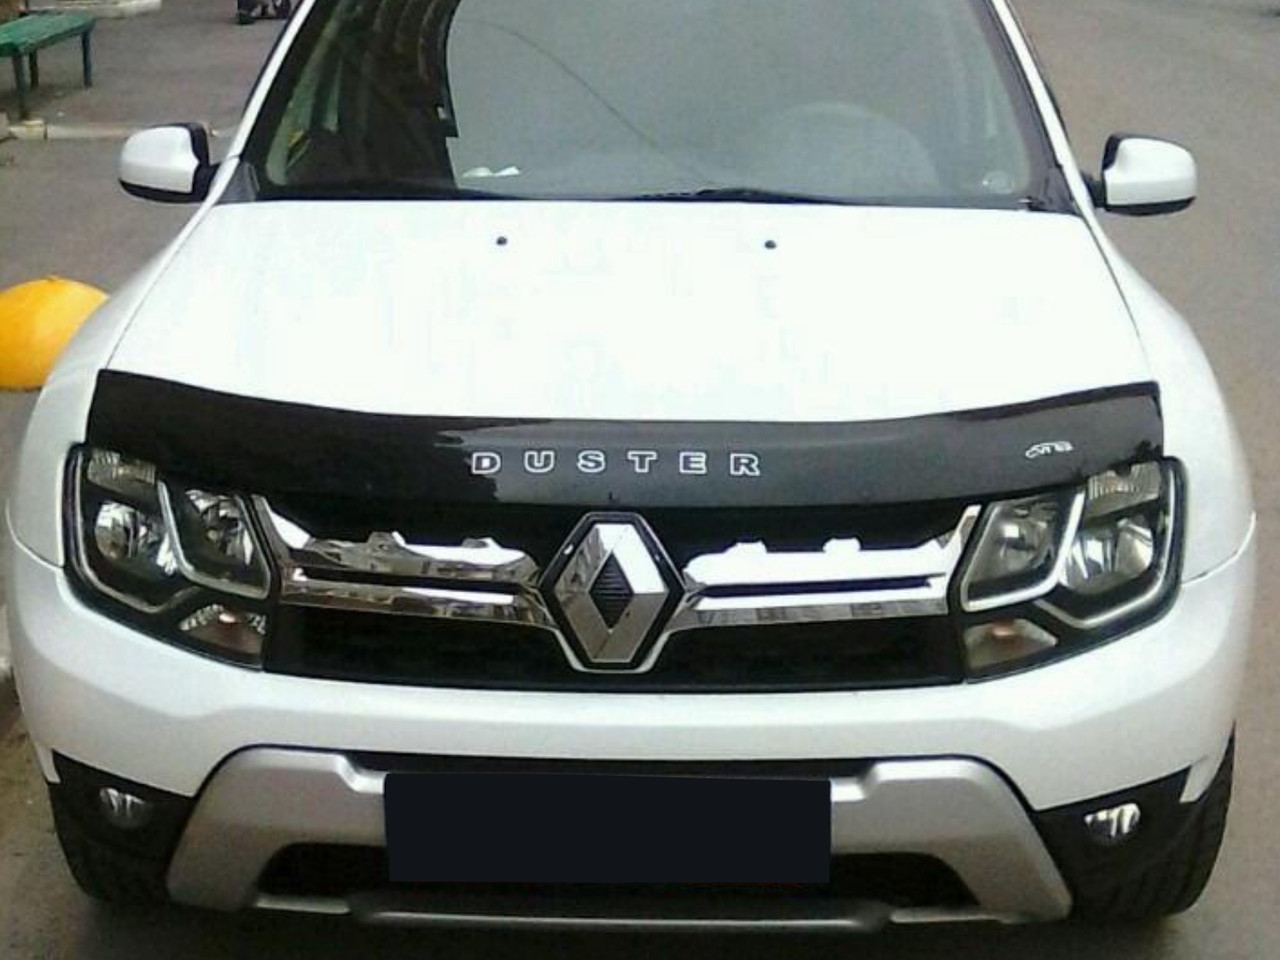 Дефлектор капота Renault Duster с 2010 г.в. (Рено Дастер) Vip Tuning